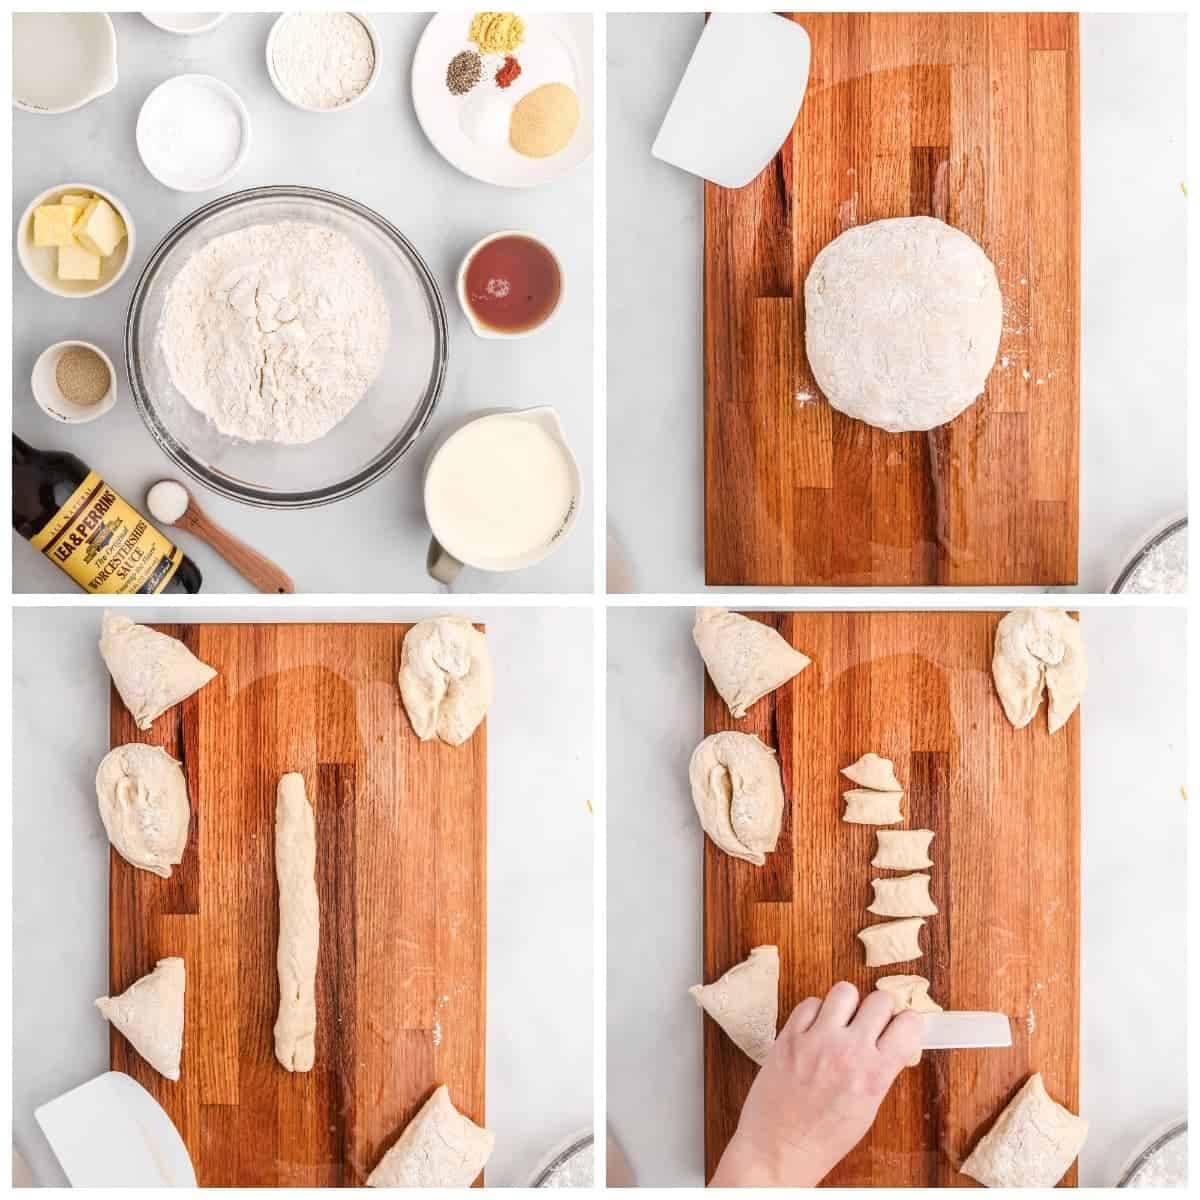 Four process photos. First one, a photo of all the dry and wet ingredients. Second one, dough ball placed on a cutting board. Third one, pretzel dough rolled into a 12 inch strand. Fourth one, strand cut into bite size pieces.